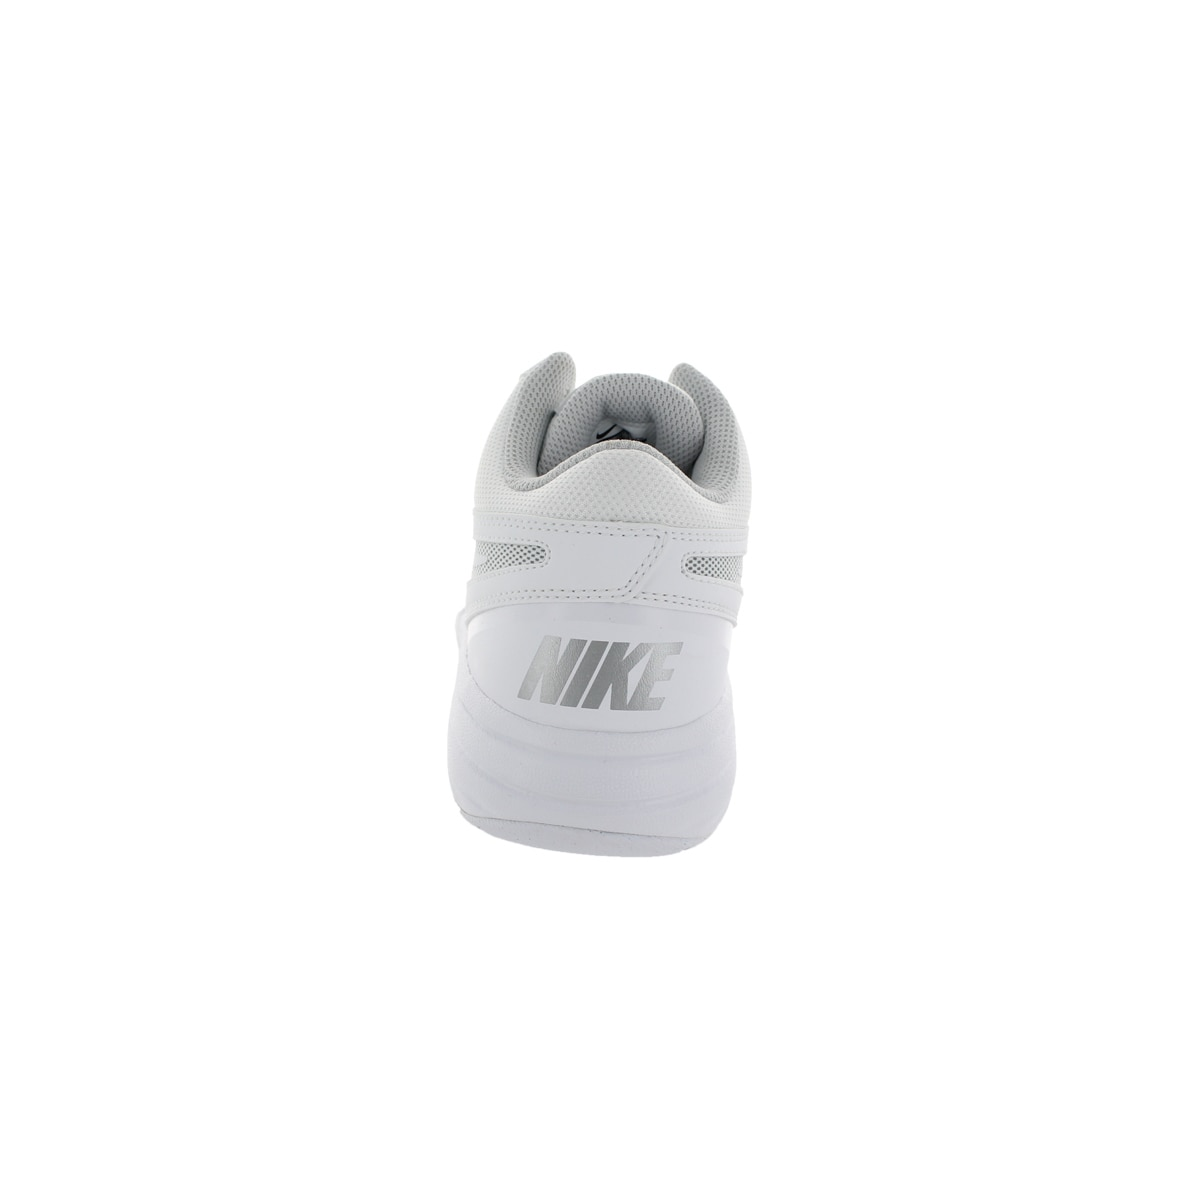 5004a8a88b06 Shop Nike Men s The Overplay Viii White White Metallic Silver Basketball  Shoe - Free Shipping Today - Overstock - 12334597